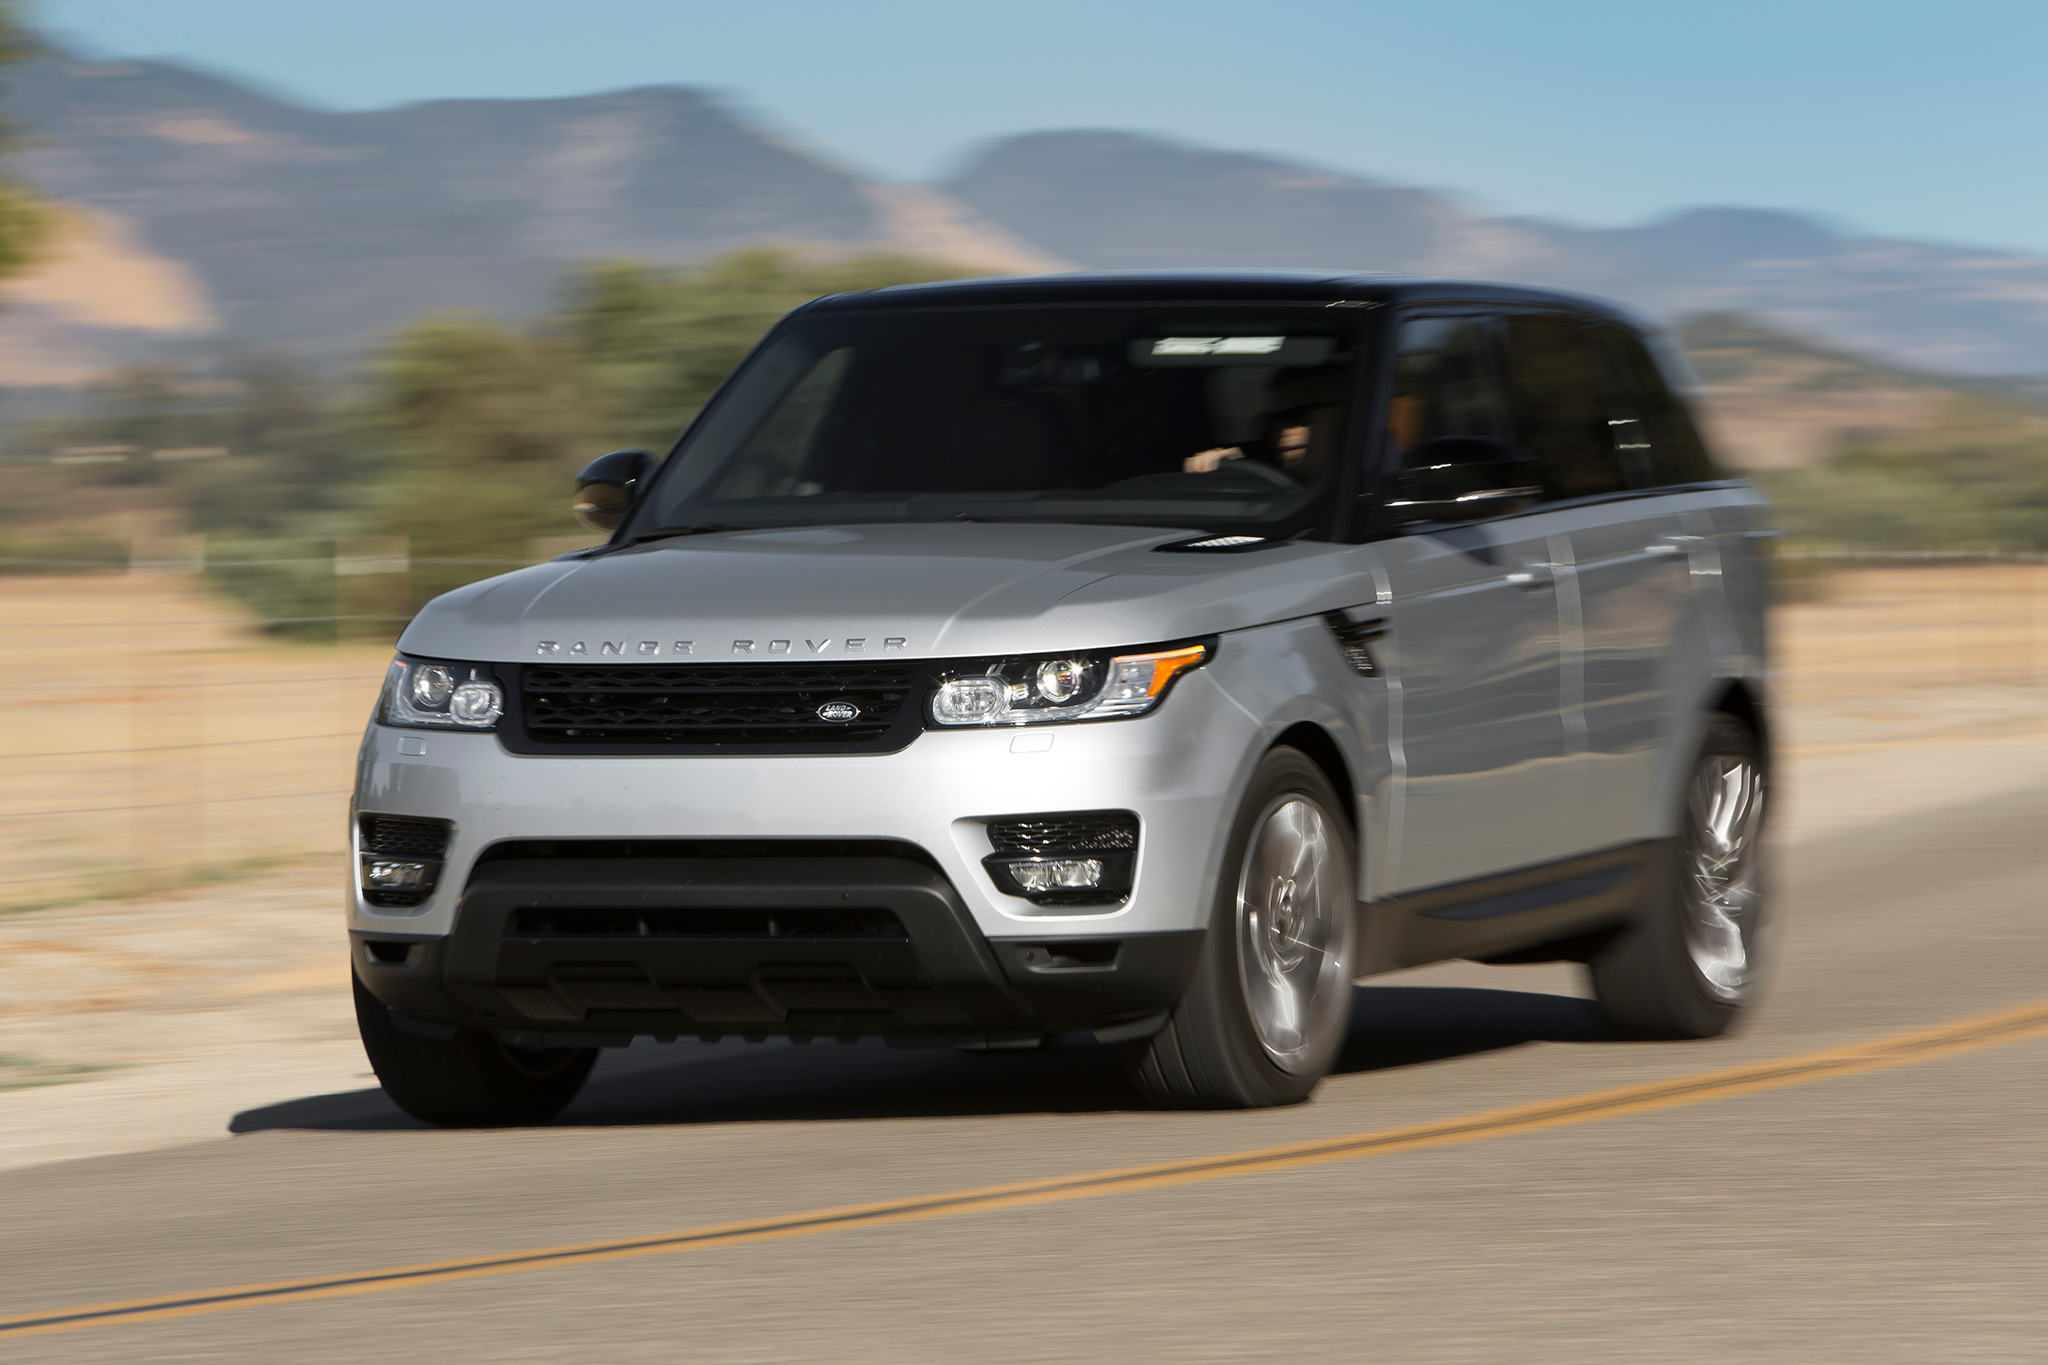 2014 Range Rover Sport Wins Four Wheeler of the Year